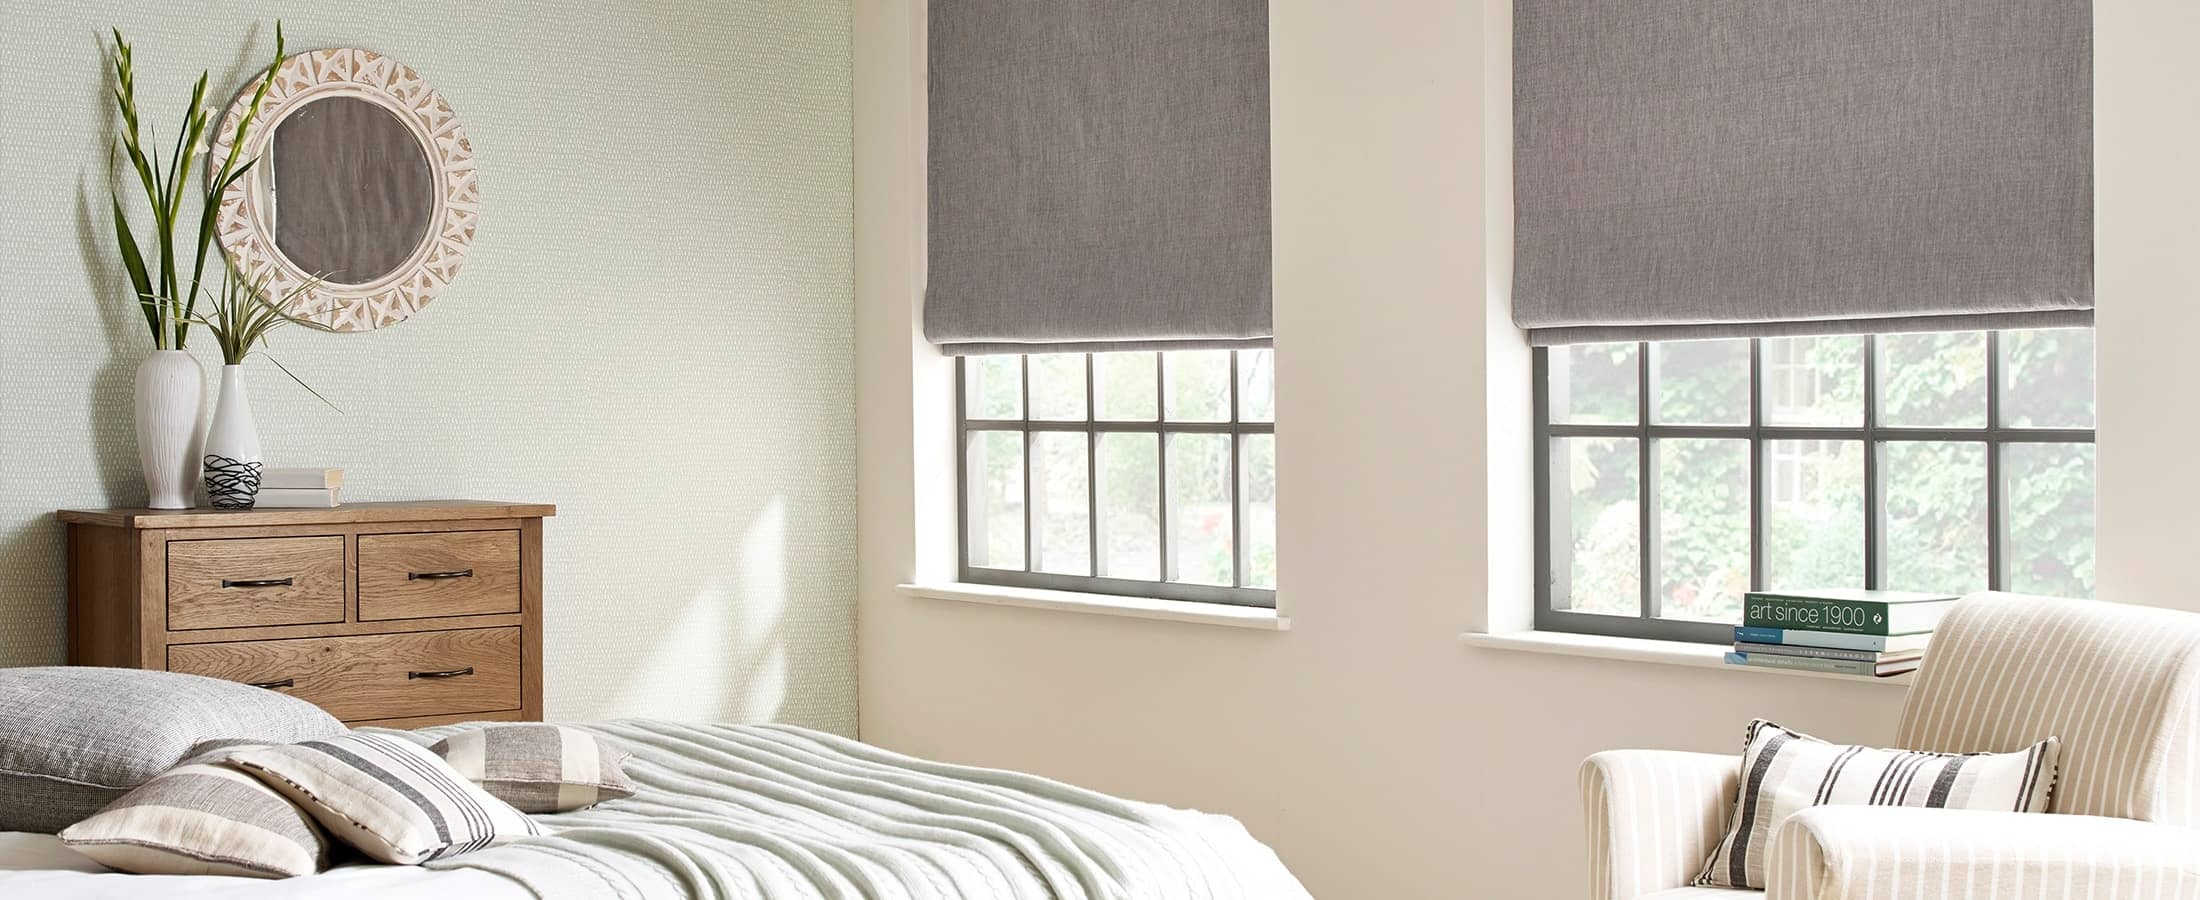 order grey roller greys uk free halfclosed blackoutroller window samplesoft fast mist rollerblind fabricchanging online delivery blindfrom blinds bloc shop popular gen at whitebkt